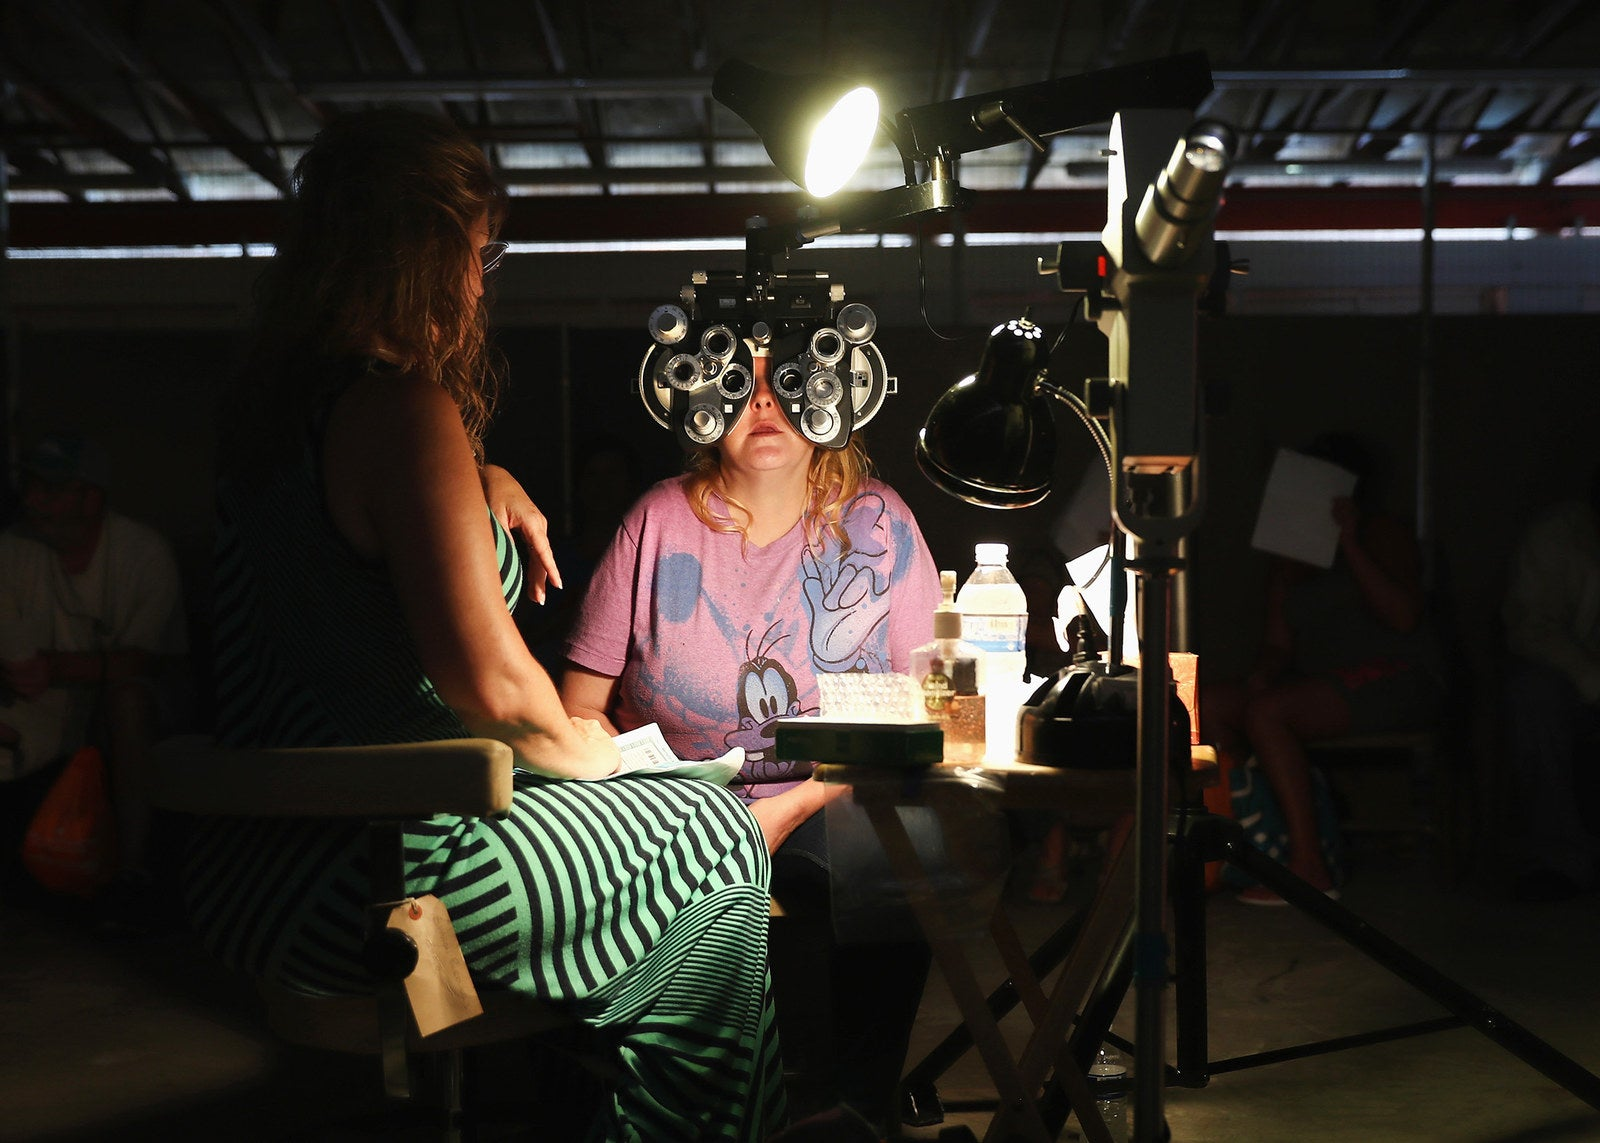 A volunteer checks a patient's vision at the RAM clinic in Wise on July 21.